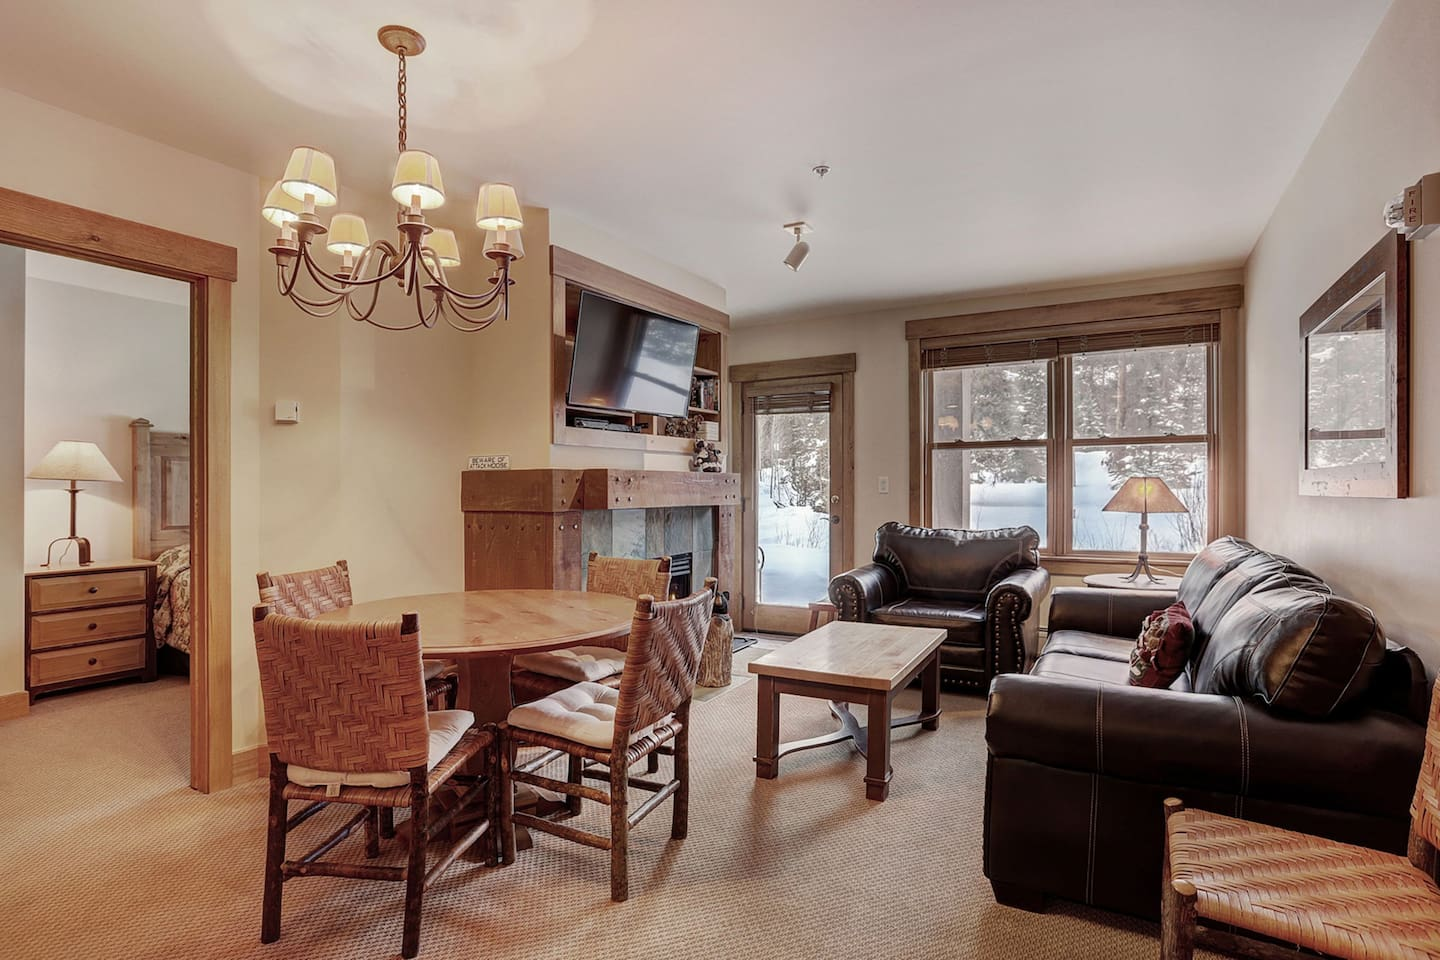 Perfect dining space for family meals and a nice living room with a TV and fireplace